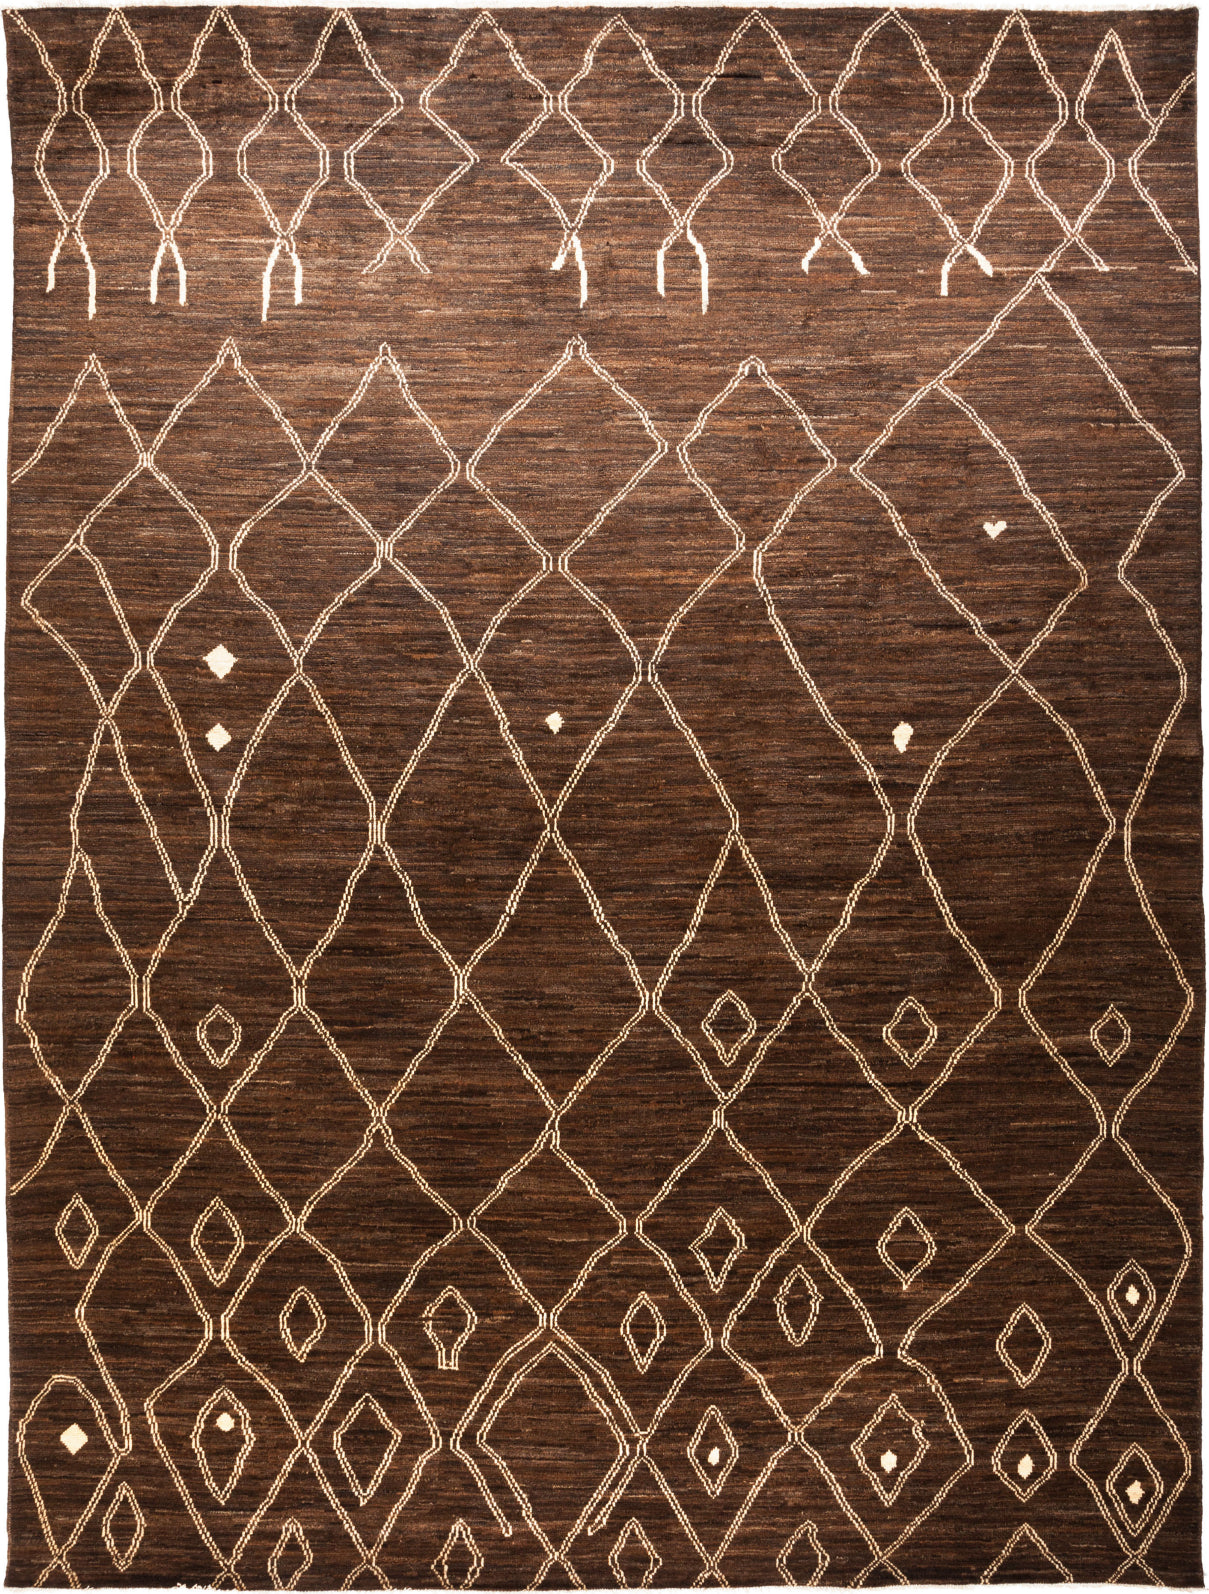 Solo Rugs Moroccan Zain M1891-8 Umber Area Rug main image